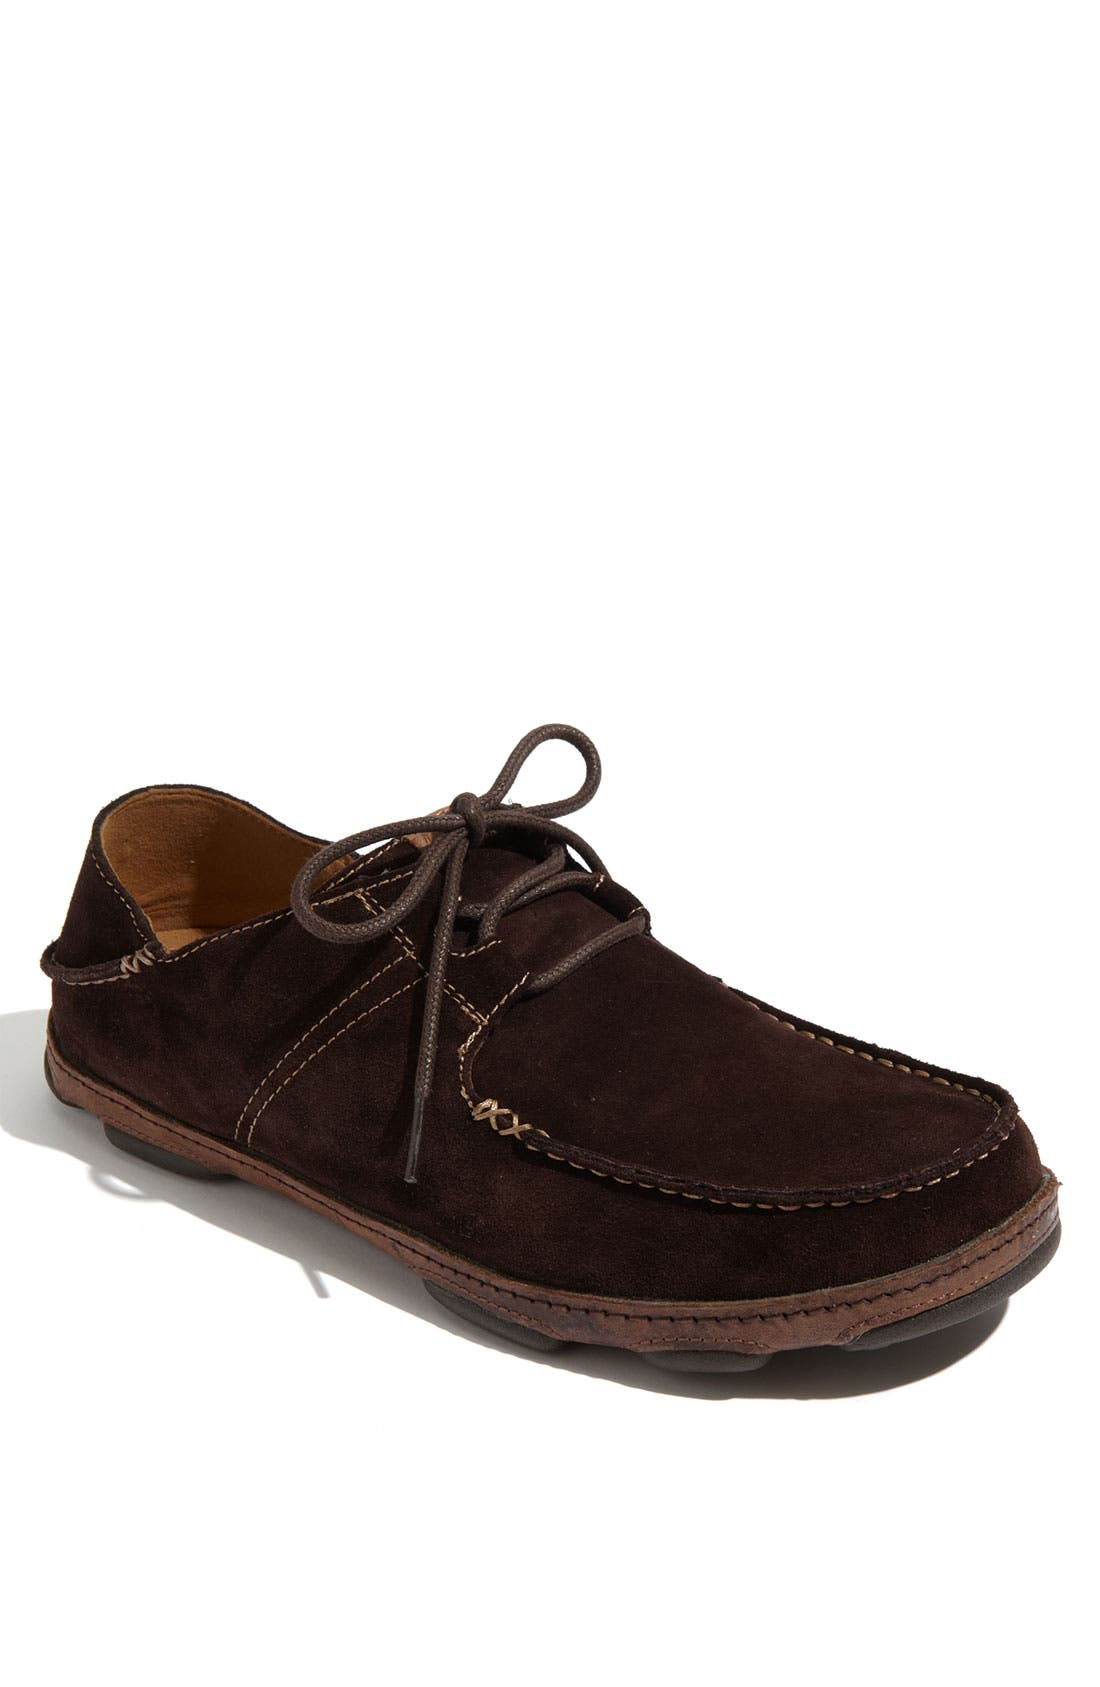 Main Image - OluKai 'Ohana' Lace Up (Men)